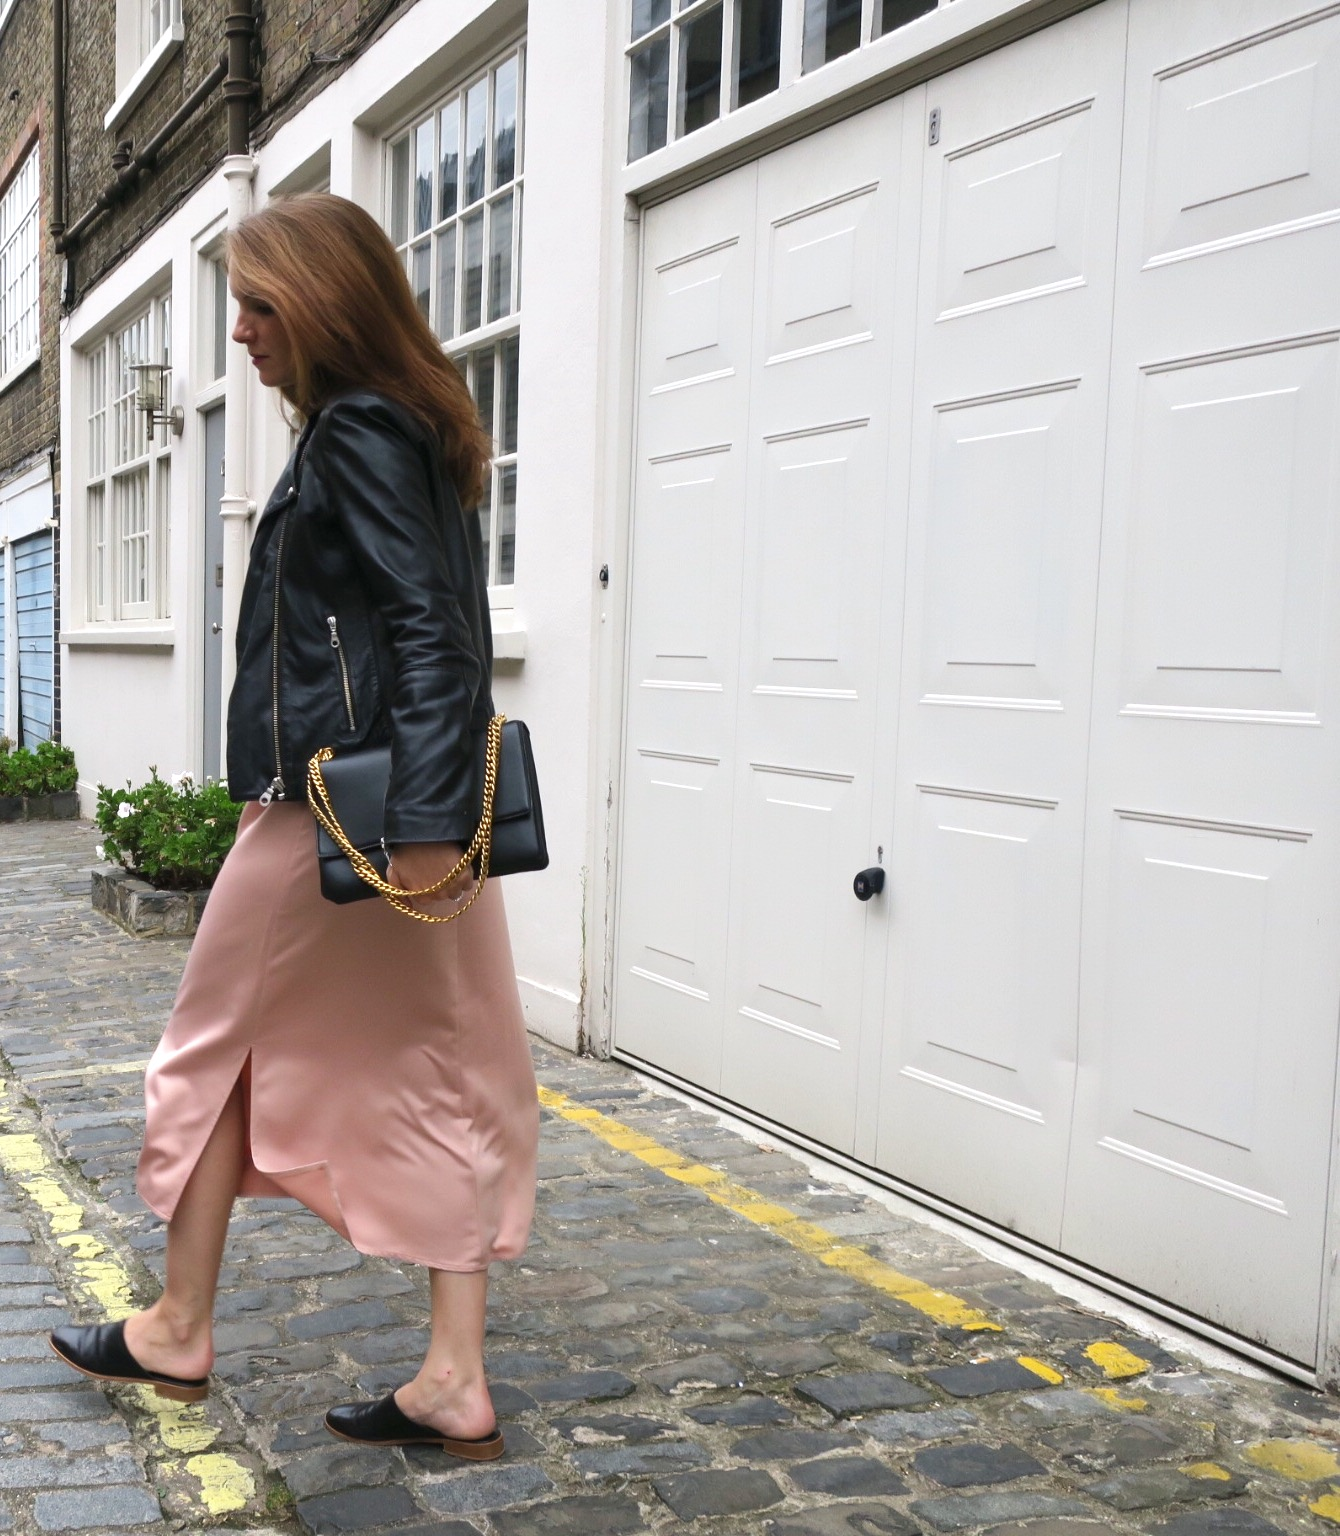 SLIP IN TO THE NEW SEASON - The Grown Up Edit